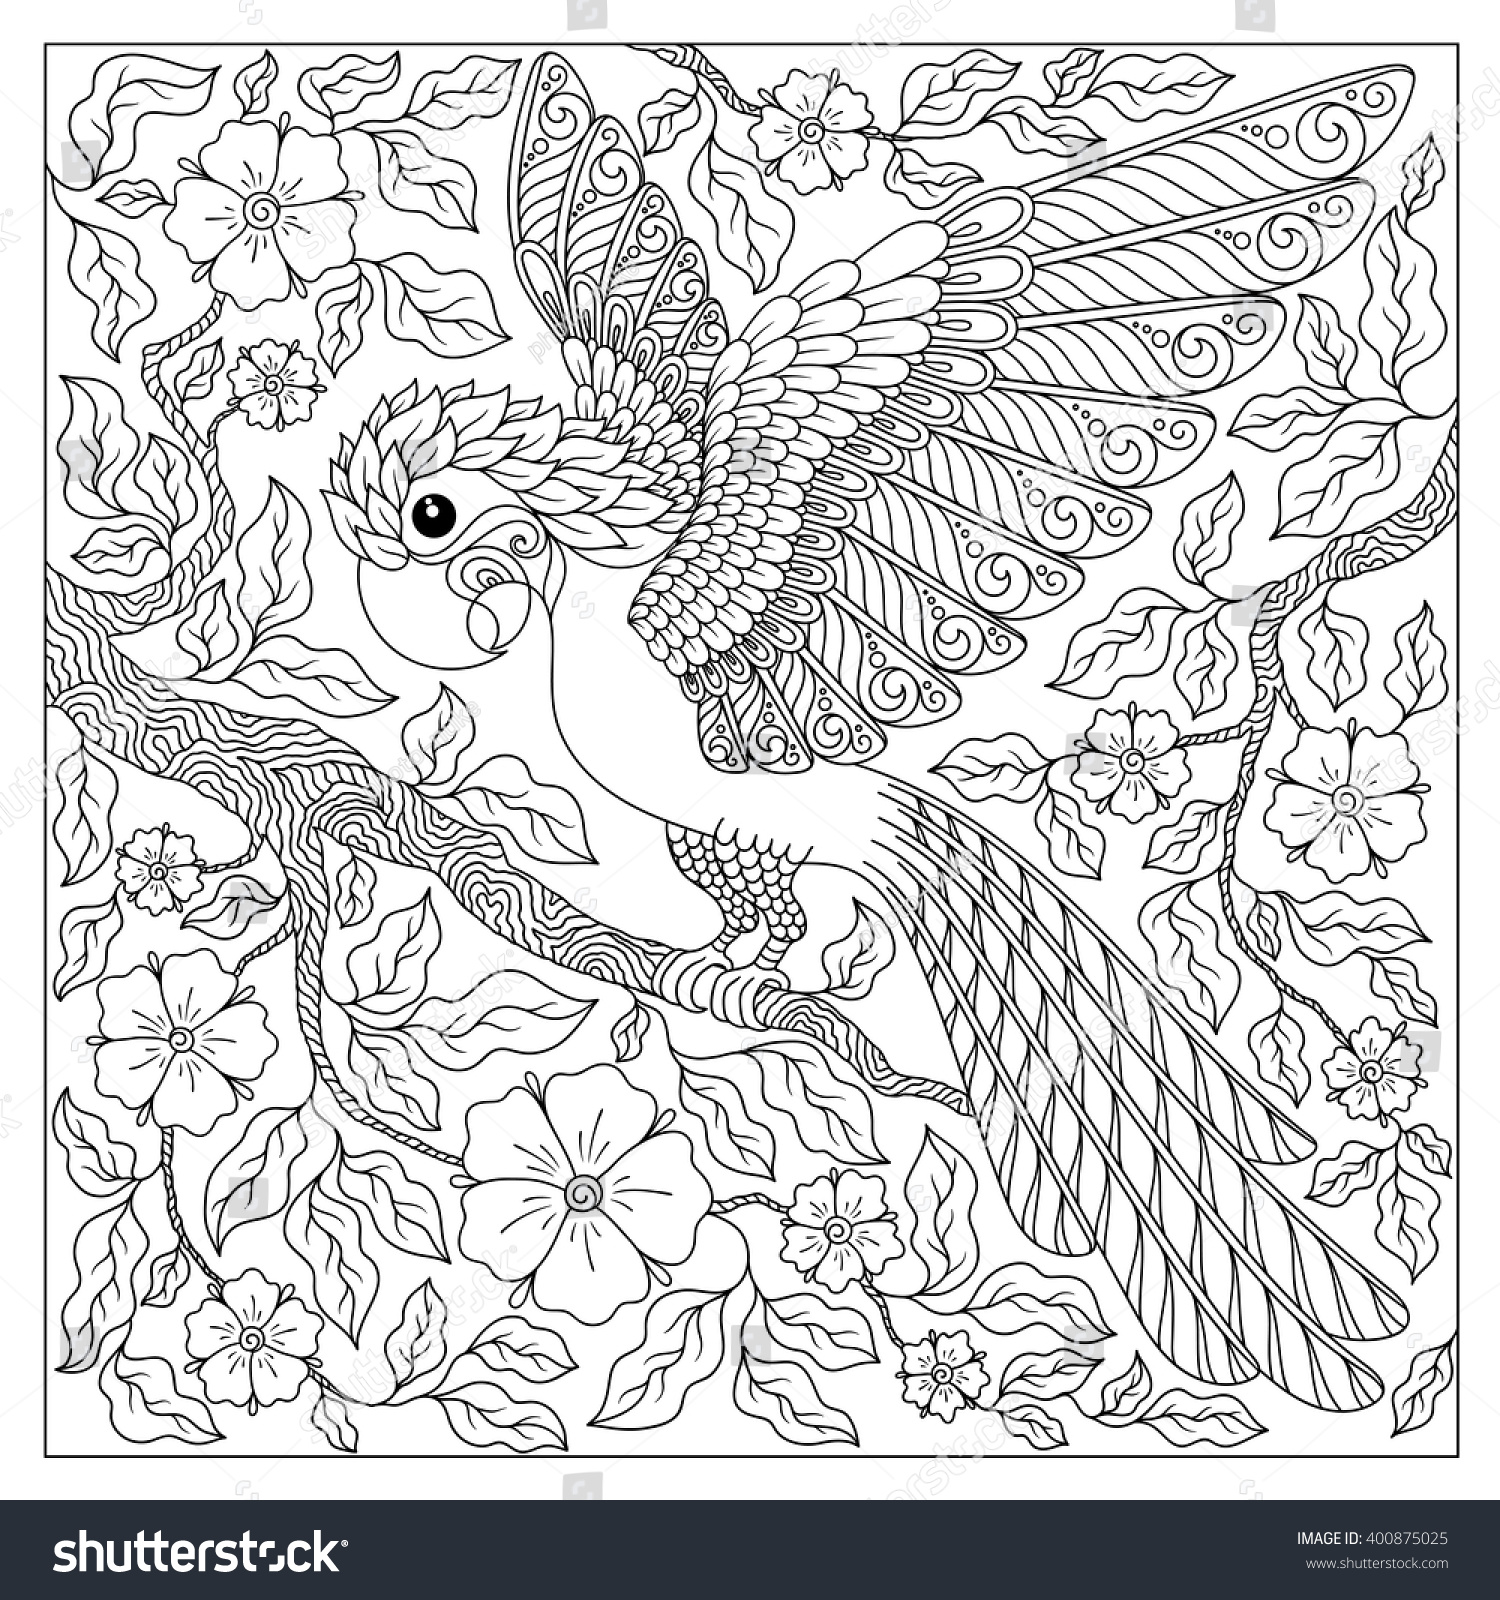 Contour Line Drawing Bird : Exotic birdfantastic flowersbranches leavescontour thin